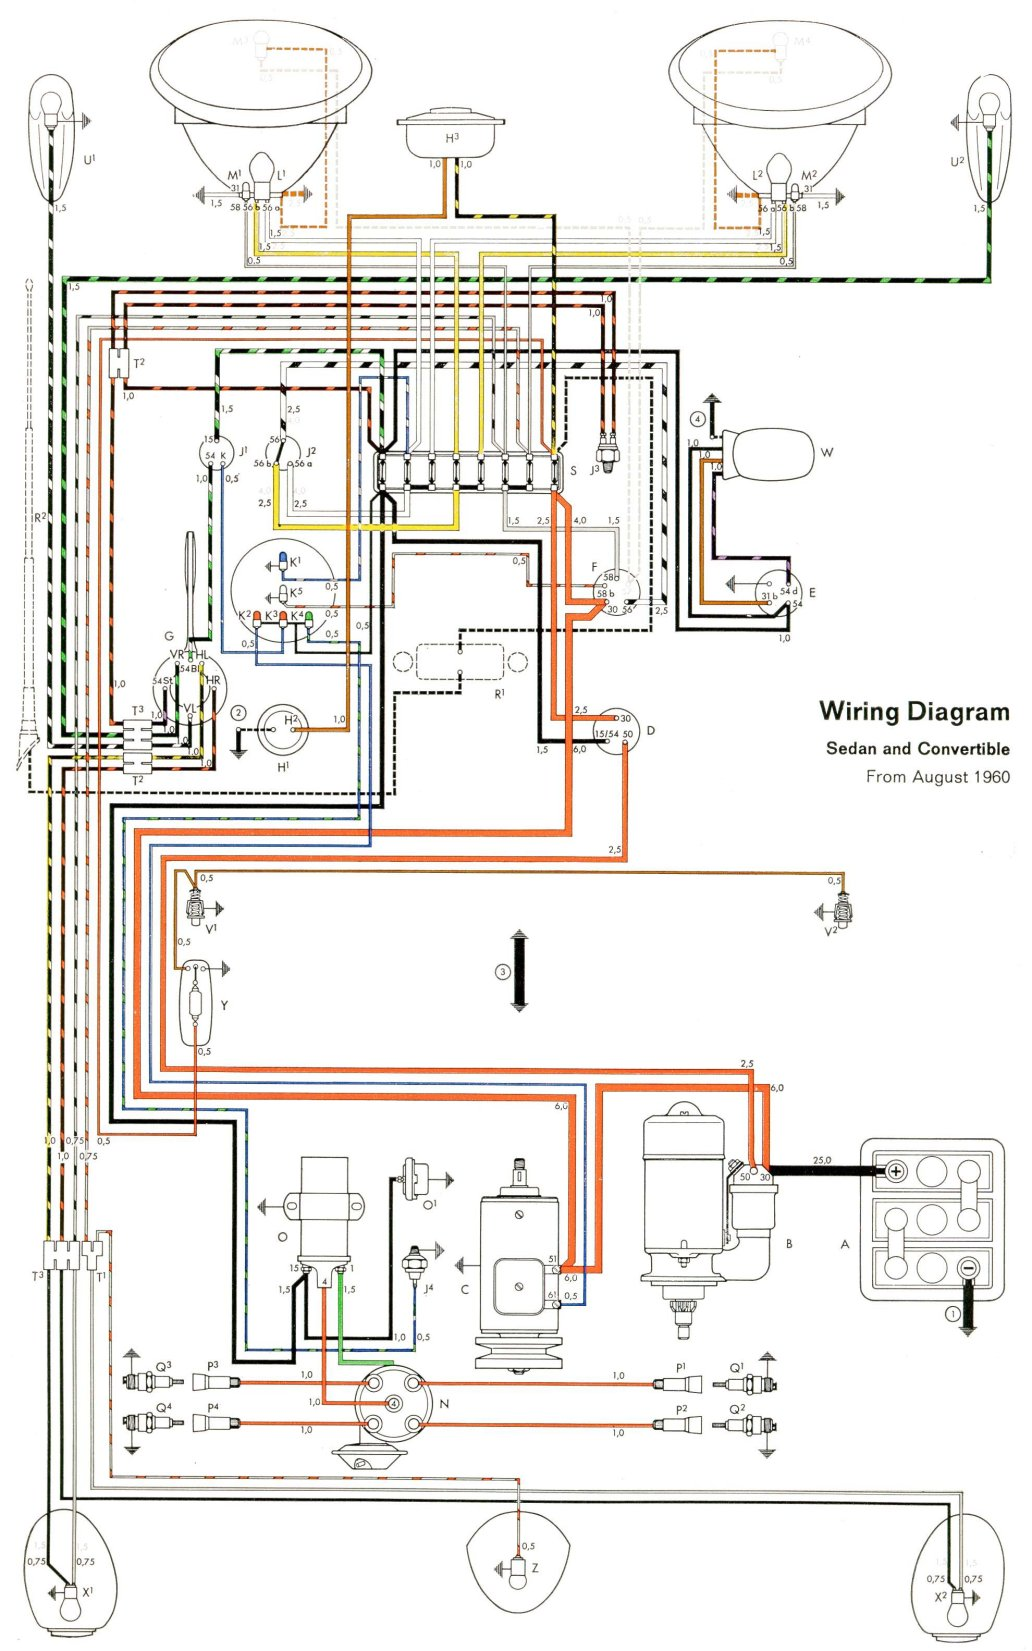 1974 Volkswagen Beetle Wiring Diagram Online For Ford F250 Thesamba Com Type 1 Diagrams F 250